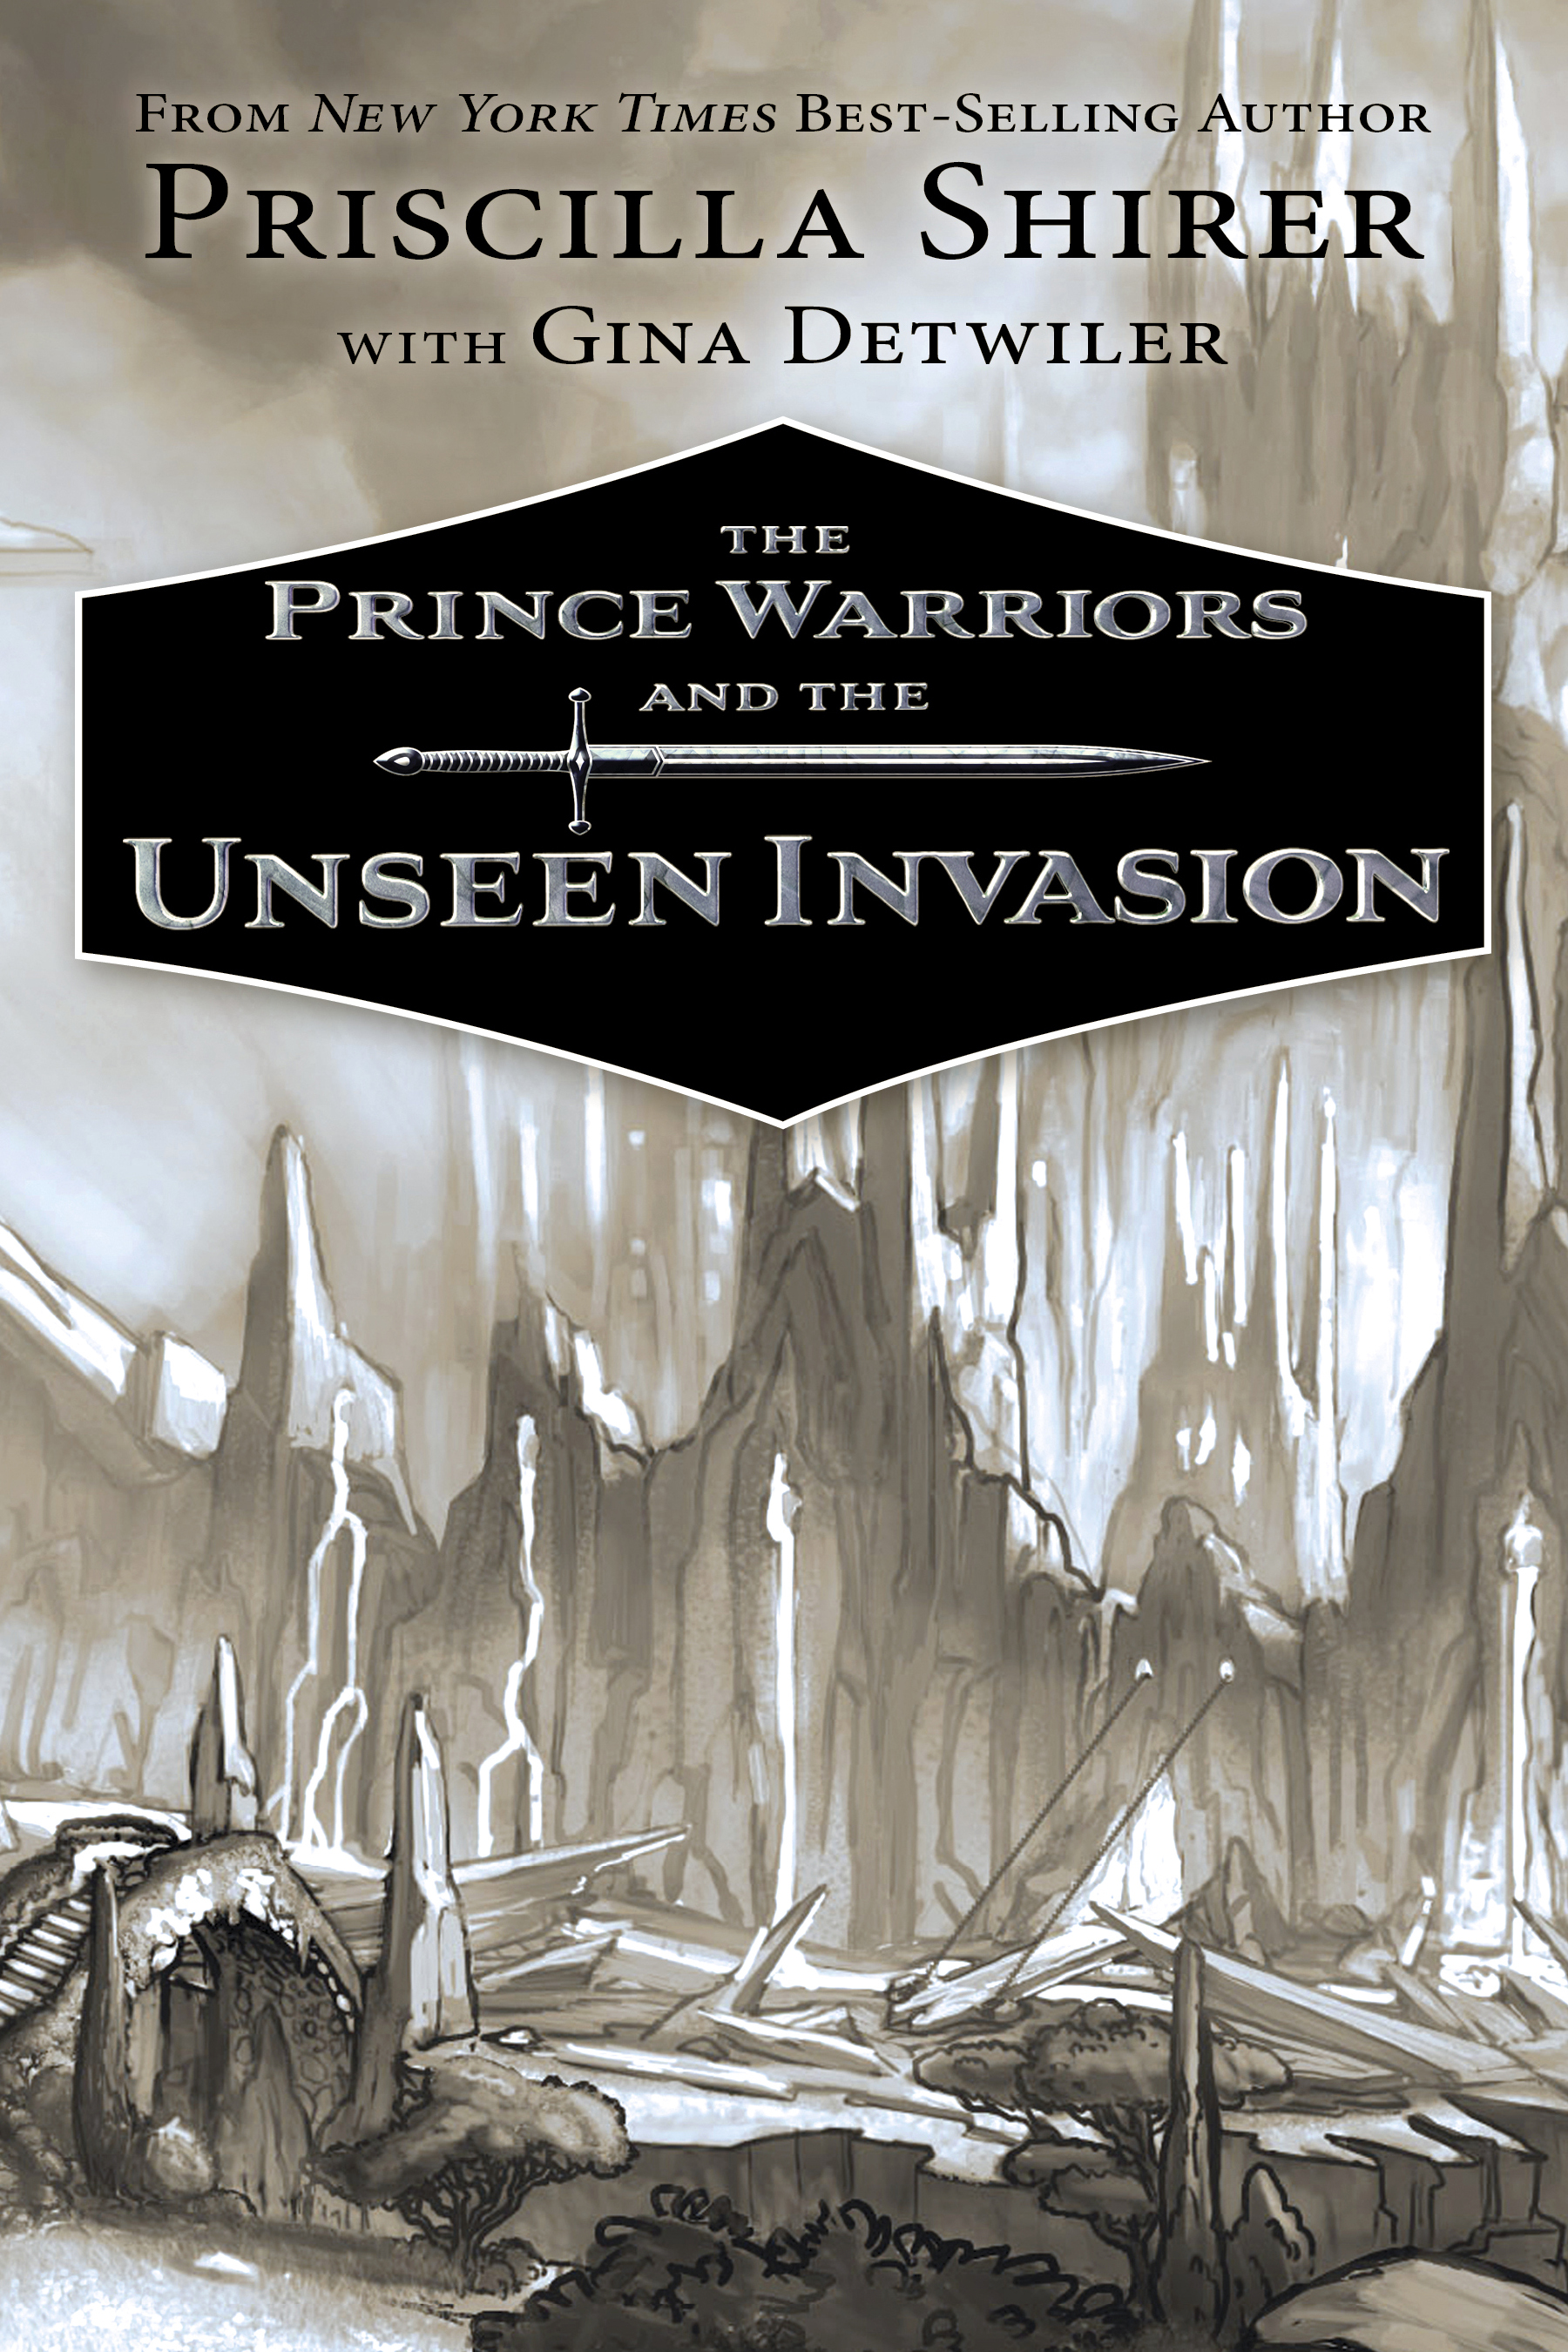 The Prince Warriors and the Unseen Invasion (The Prince Warriors, #2)